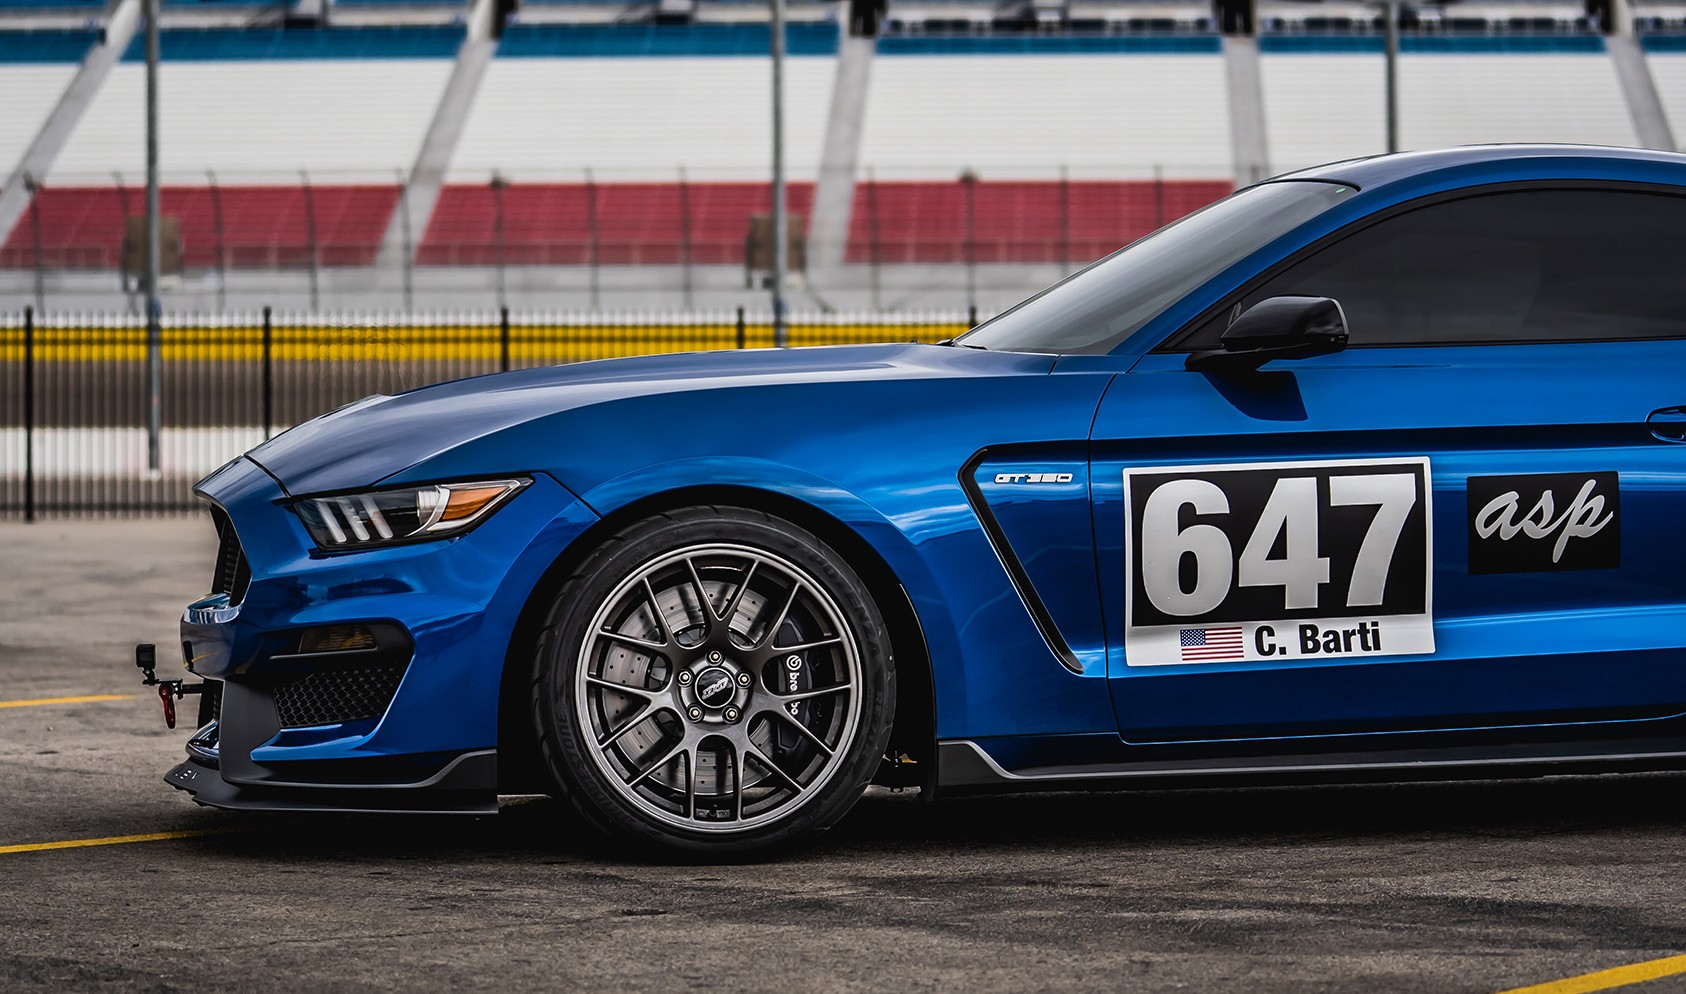 """S550 GT350 Square Fitment<br />19x11"""" ET52 Anthracite EC-7 wheels with 305/30-19 Michelin Pilot Sport Cup 2 tires<br />25mm front spacers<br />Photo by: Mark Bastos"""